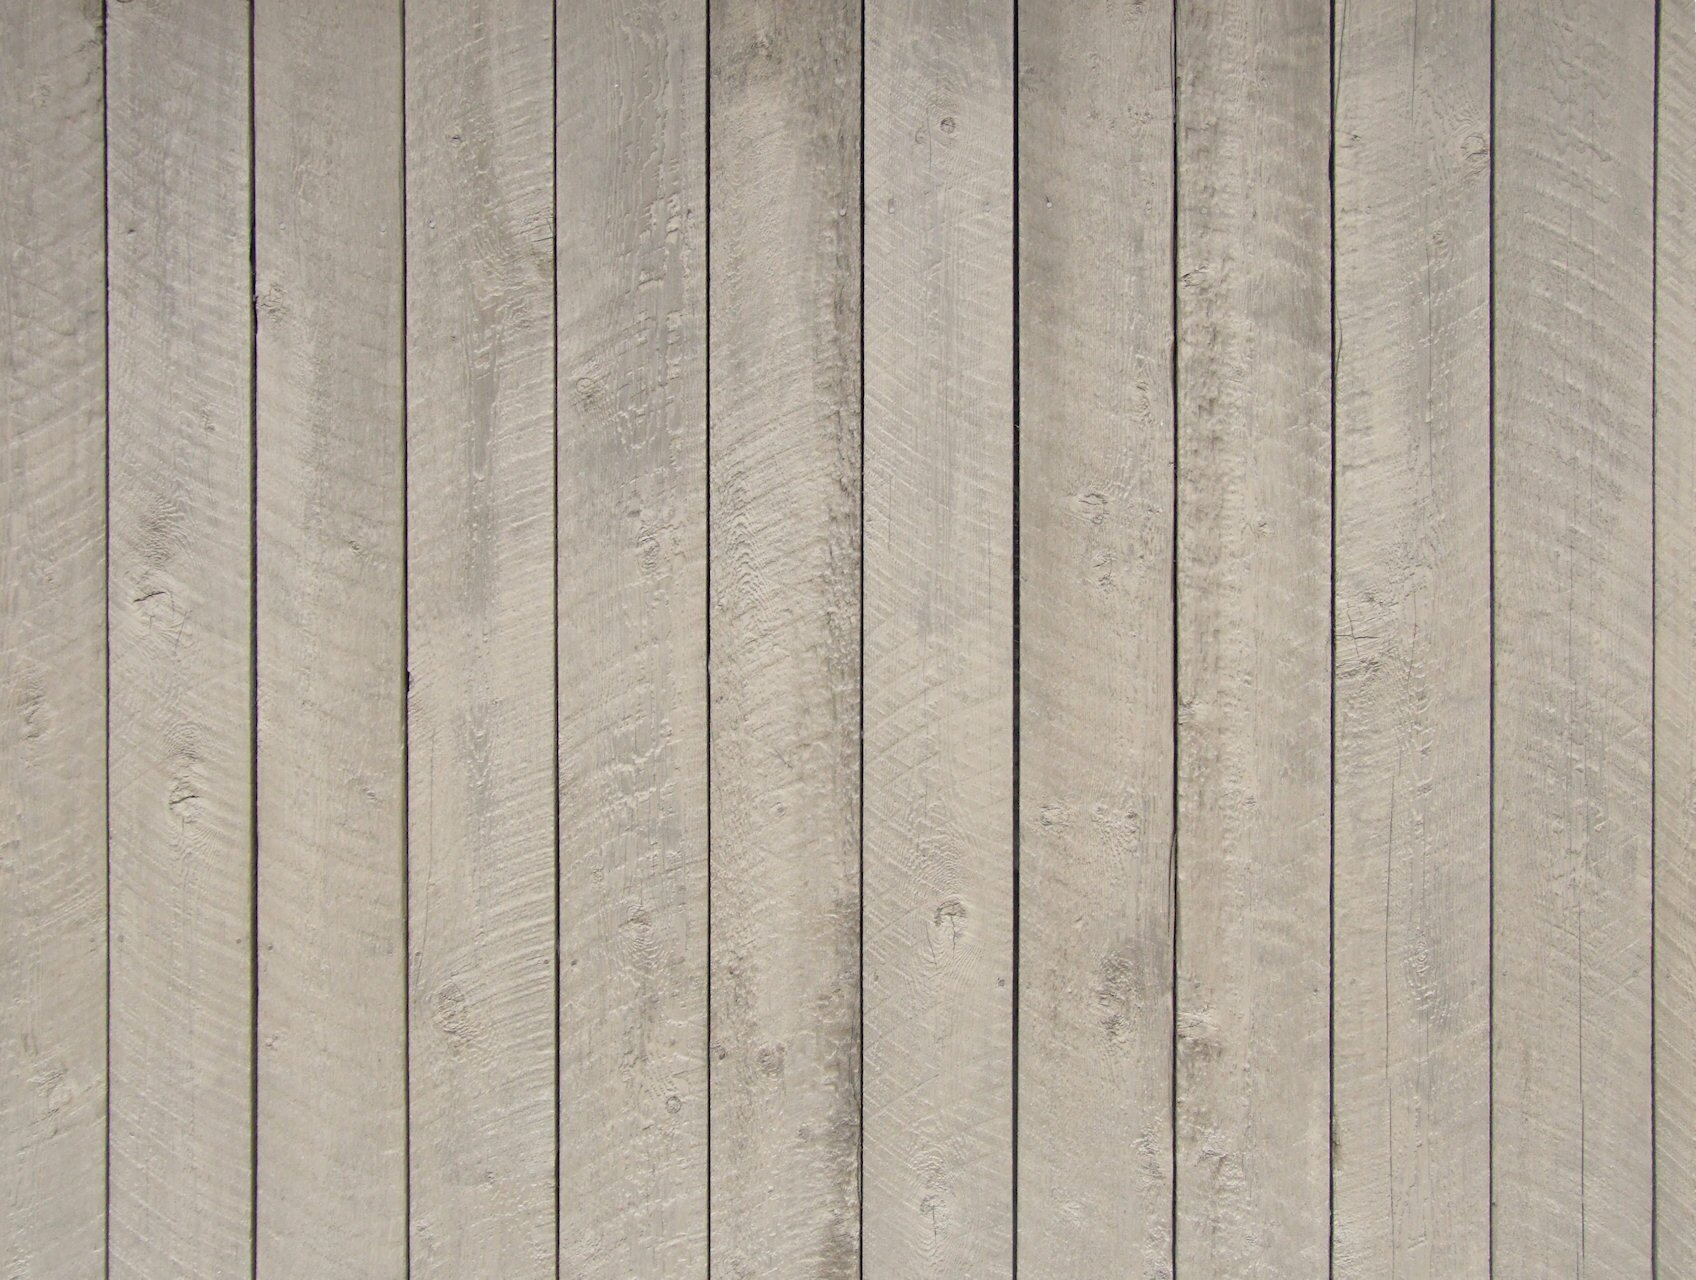 Htc One 3d Wallpaper Techcredo Wood Texture Wallpaper Collection For Android